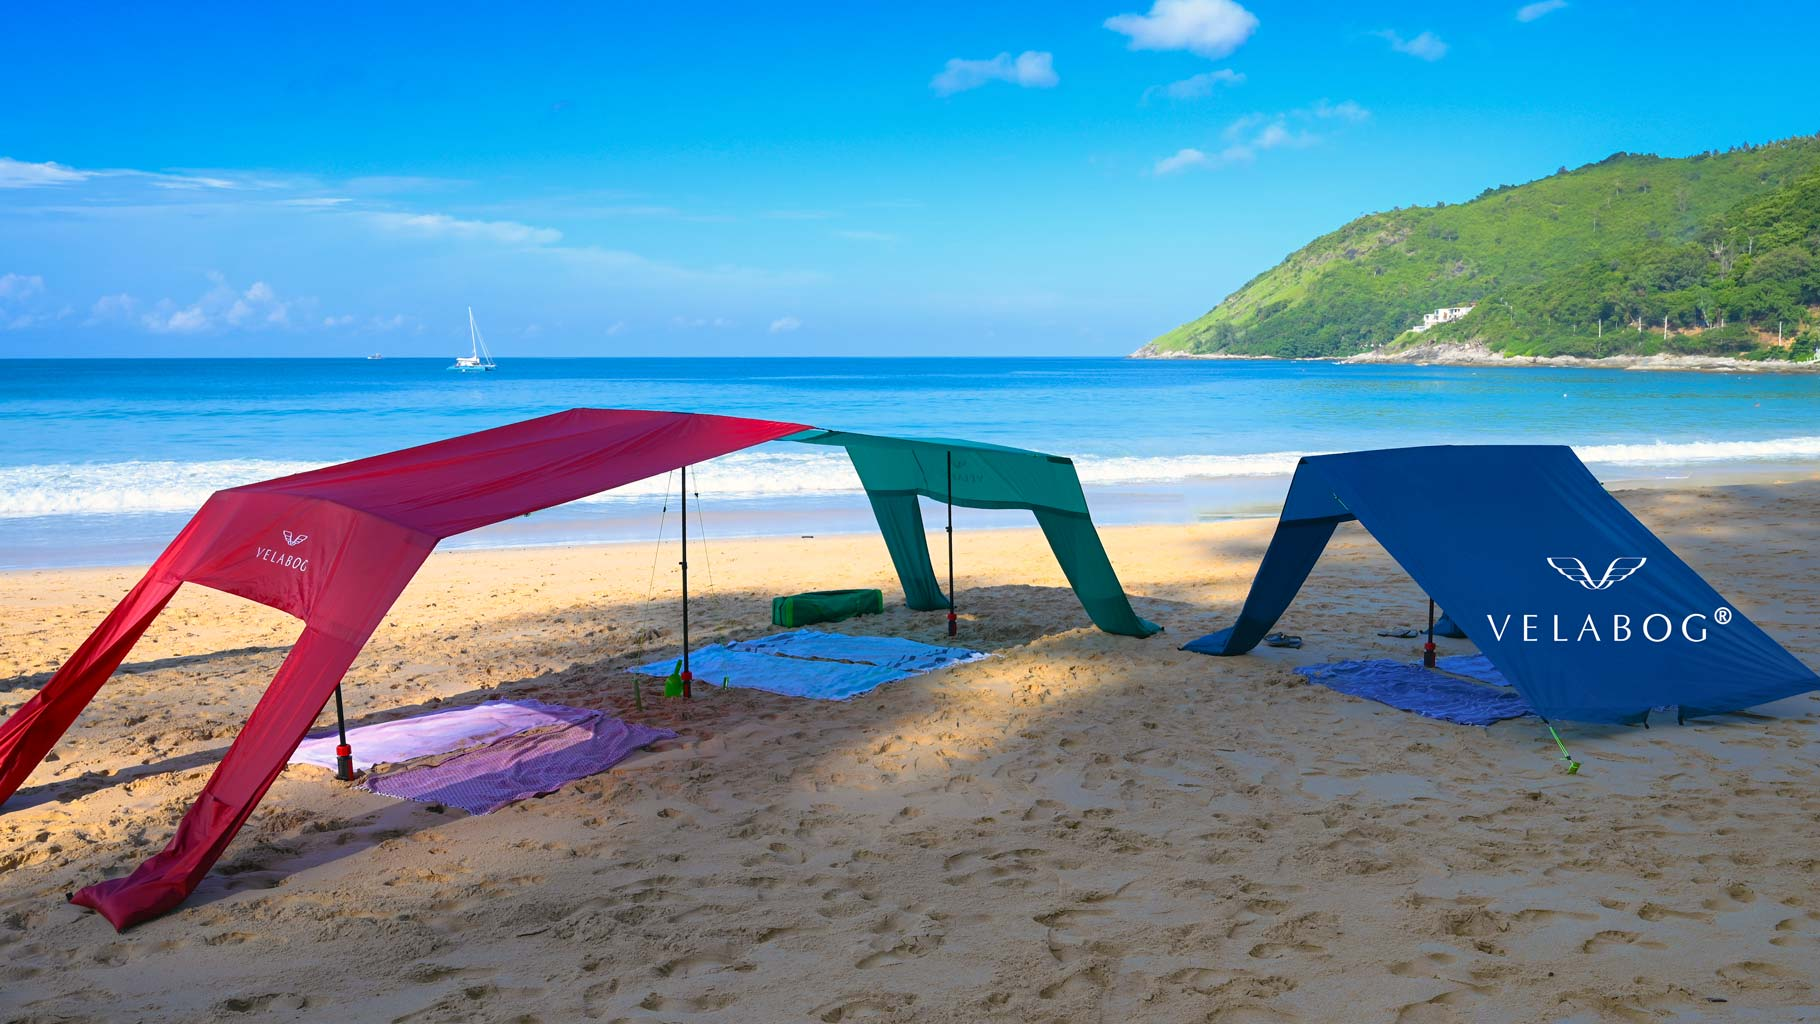 Three Velabog sun sails «Breeze» on the windless beach. Sun sail, beach umbrella and beach tent in one. Combination with the help of extension set. Provides a lot of shadow for the whole family and friends.